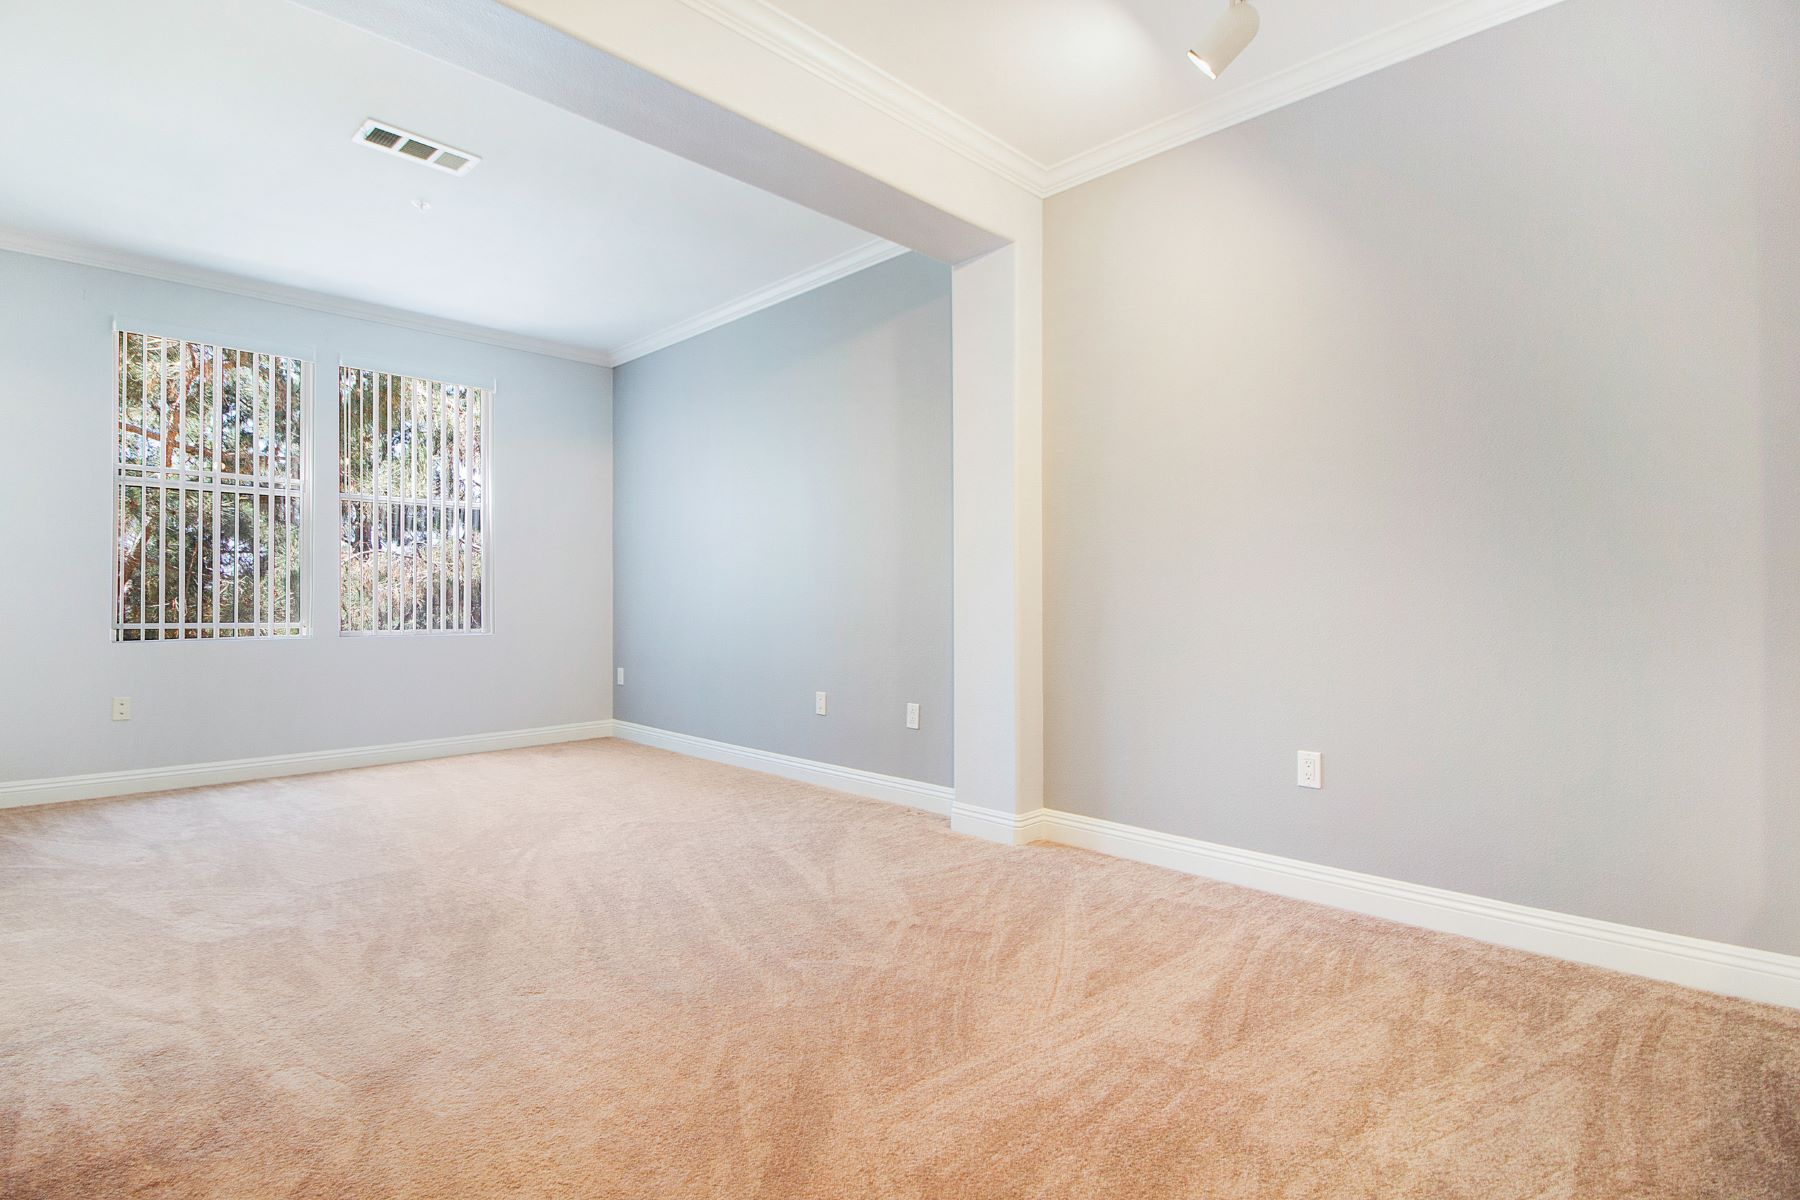 Condominiums for Sale at 2243 Watermarke Place Irvine, California 92612 United States